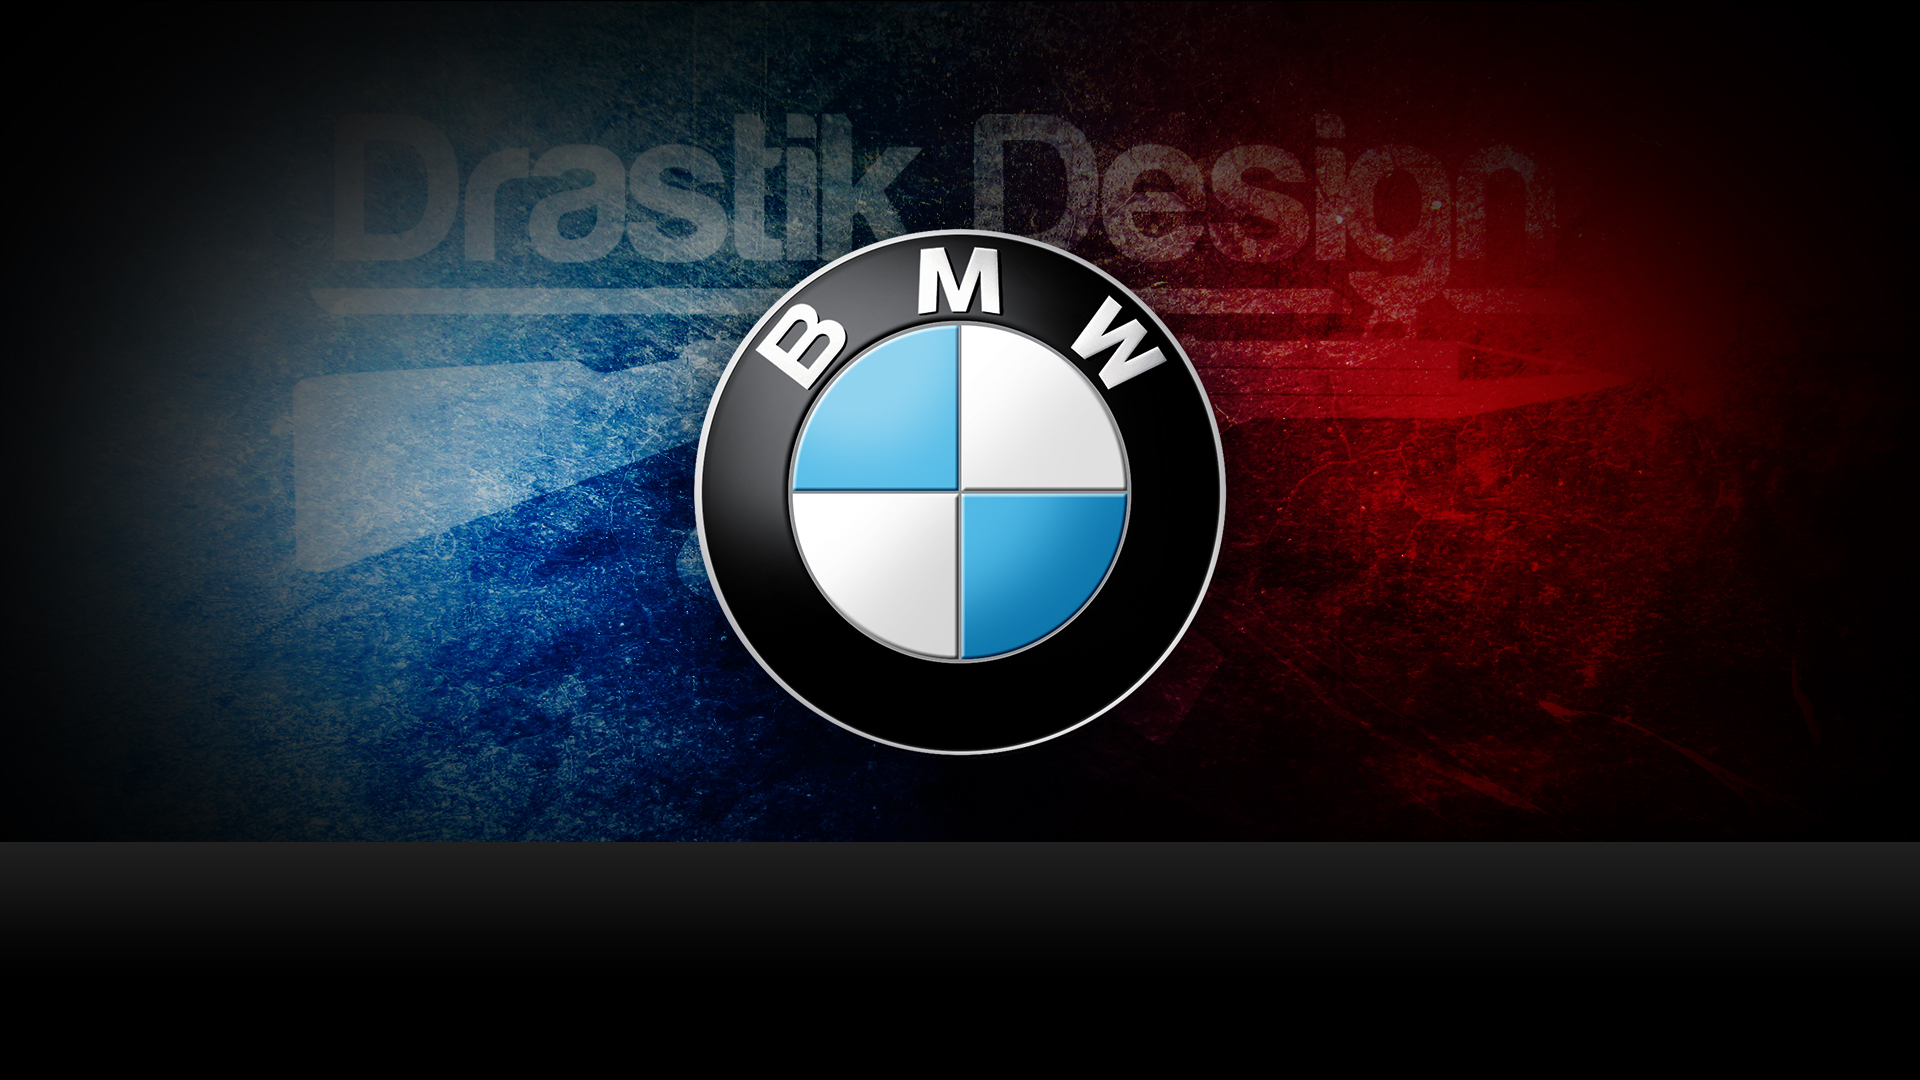 hd wallpaper bmw logo   Background Wallpapers for your Desktop and 1920x1080